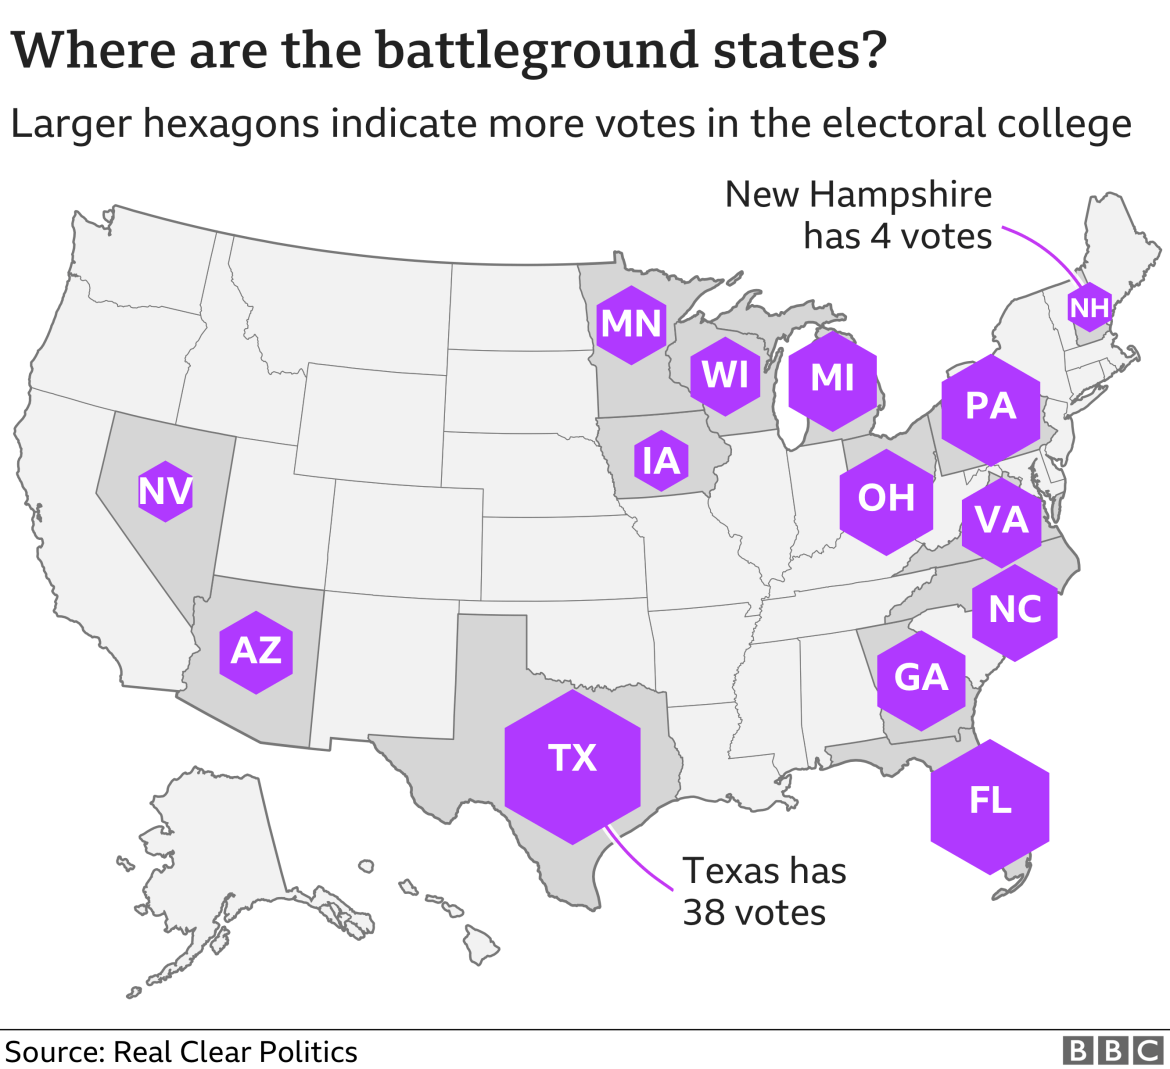 Map showing where the battleground states are in the 2020 election. Texas has the largest number of electoral college votes (38) while New Hampshire has the fewest (4)